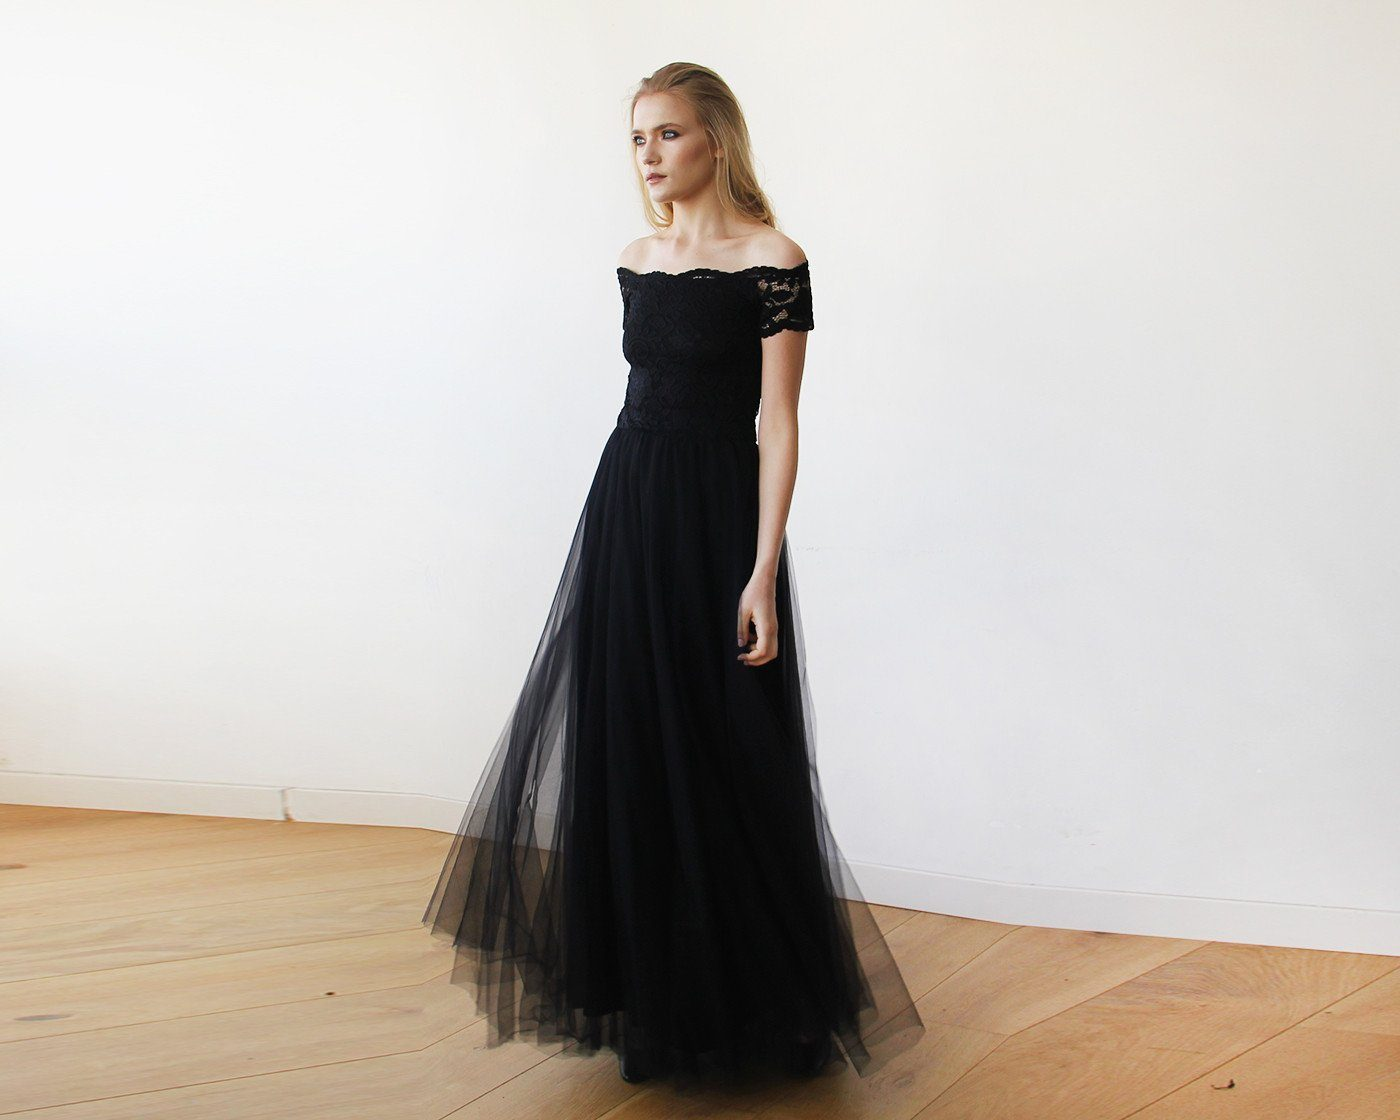 273f511360dcc1 Black Lace Off-the-Shoulder Short Sleeve Tulle Maxi Dress 1139 -  Blushfashion ...